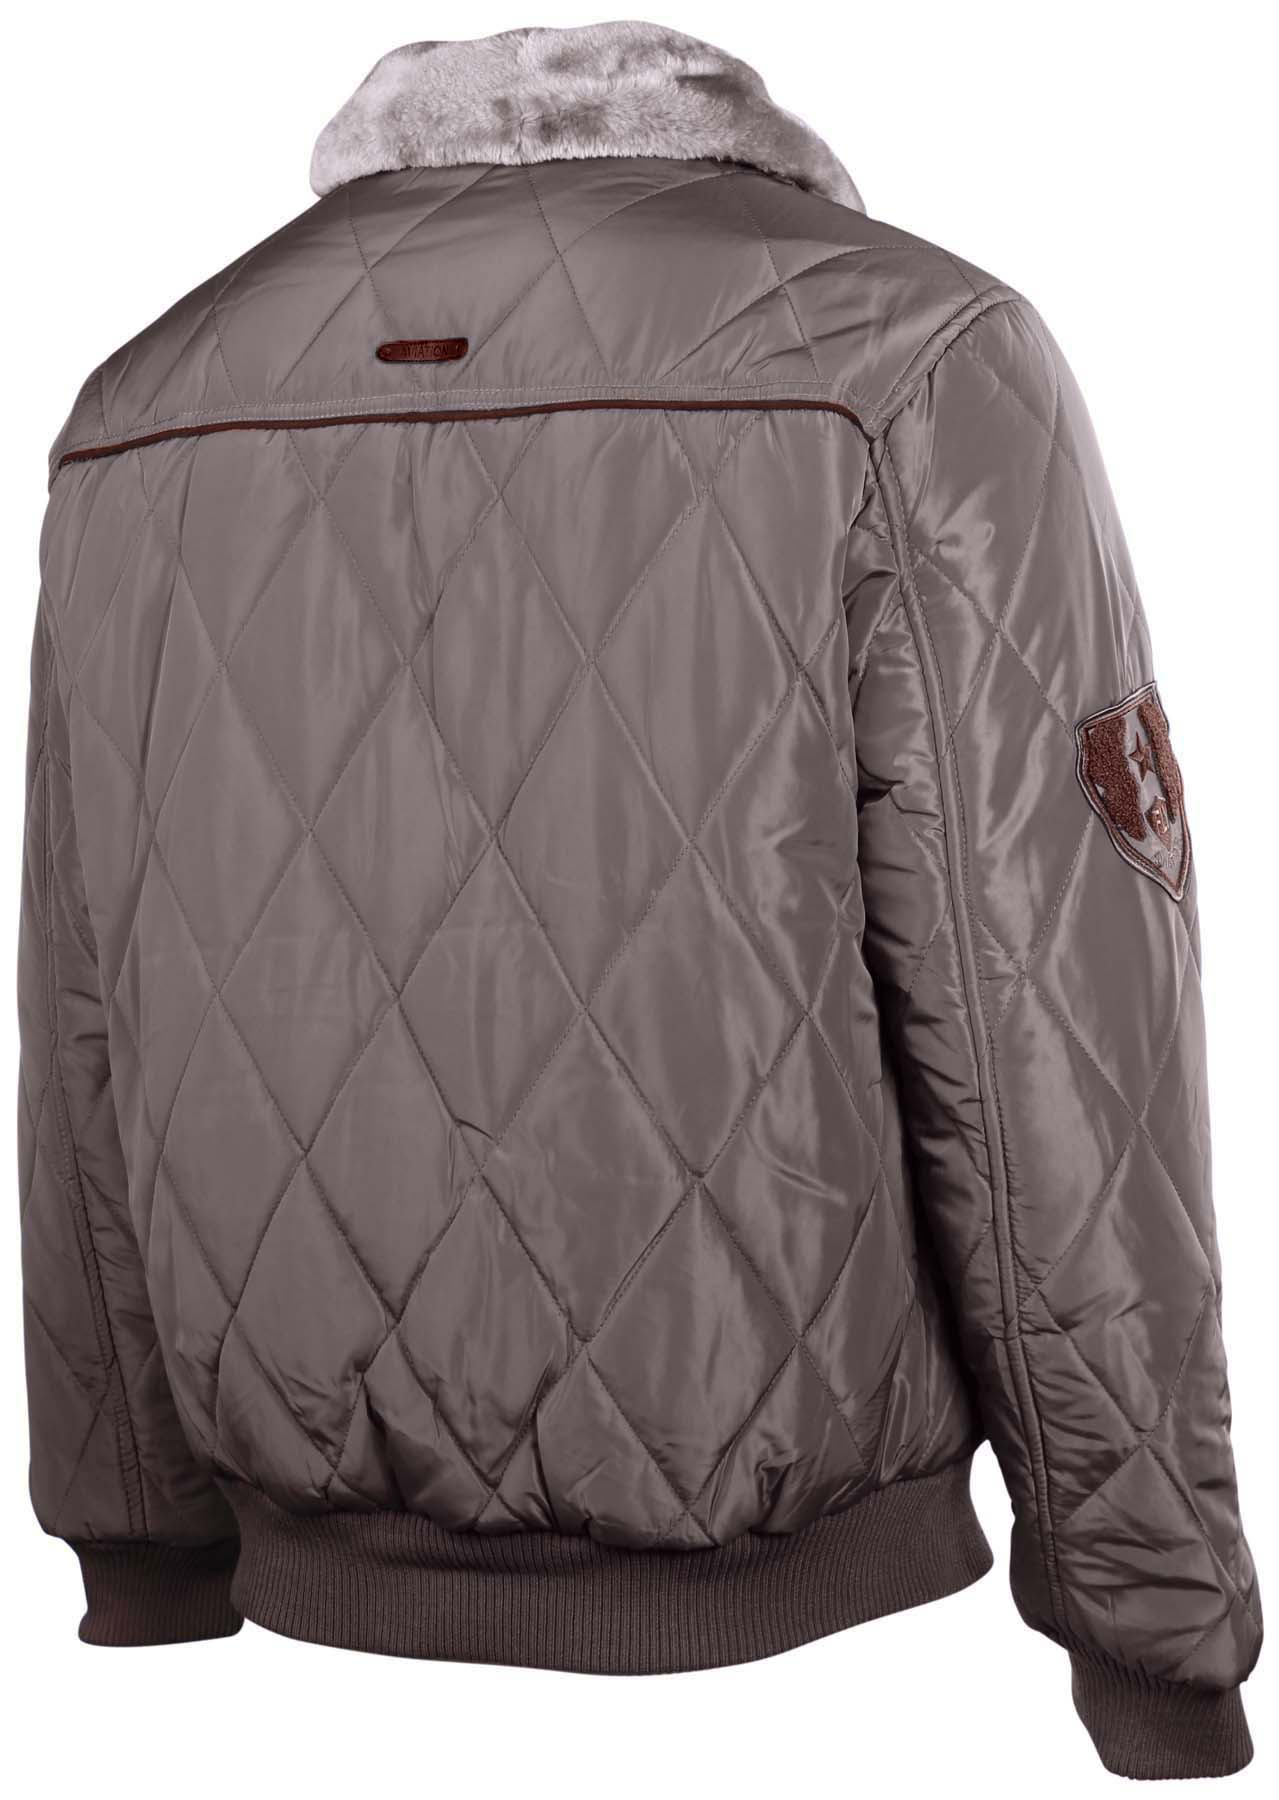 jacket p quilted ae arms larger the streamlined s faux women quilt levi asymmetrical levis most cognac leather image with motorcycle